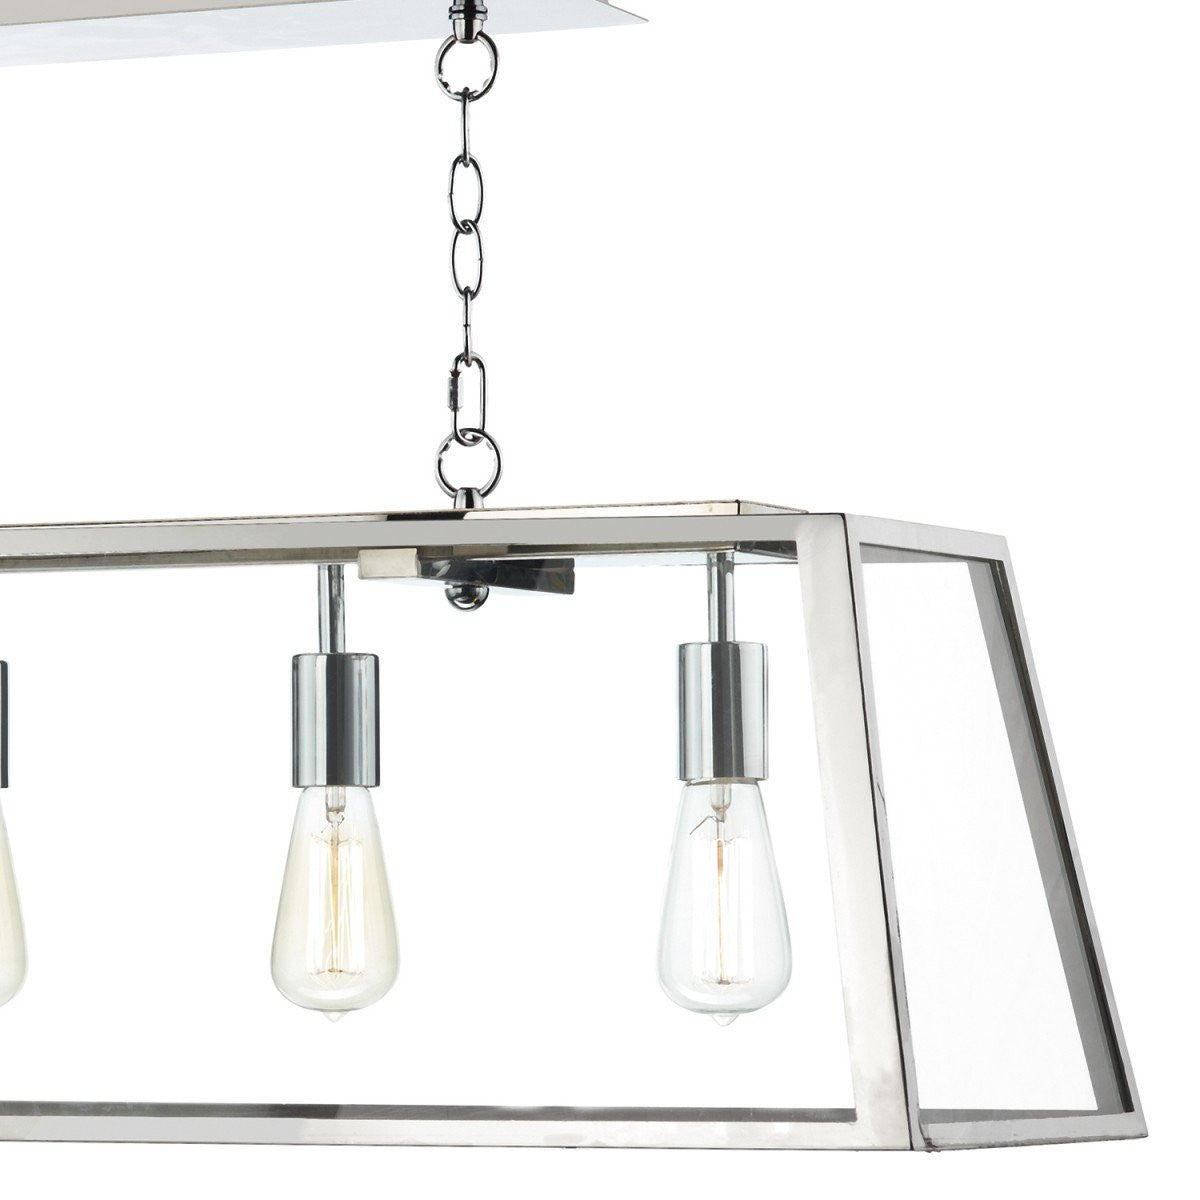 Polished chrome and glass 5 lamp box lantern id 5875 london lighting academy stainless steel 5 lights pendant light london lighting 3 aloadofball Gallery